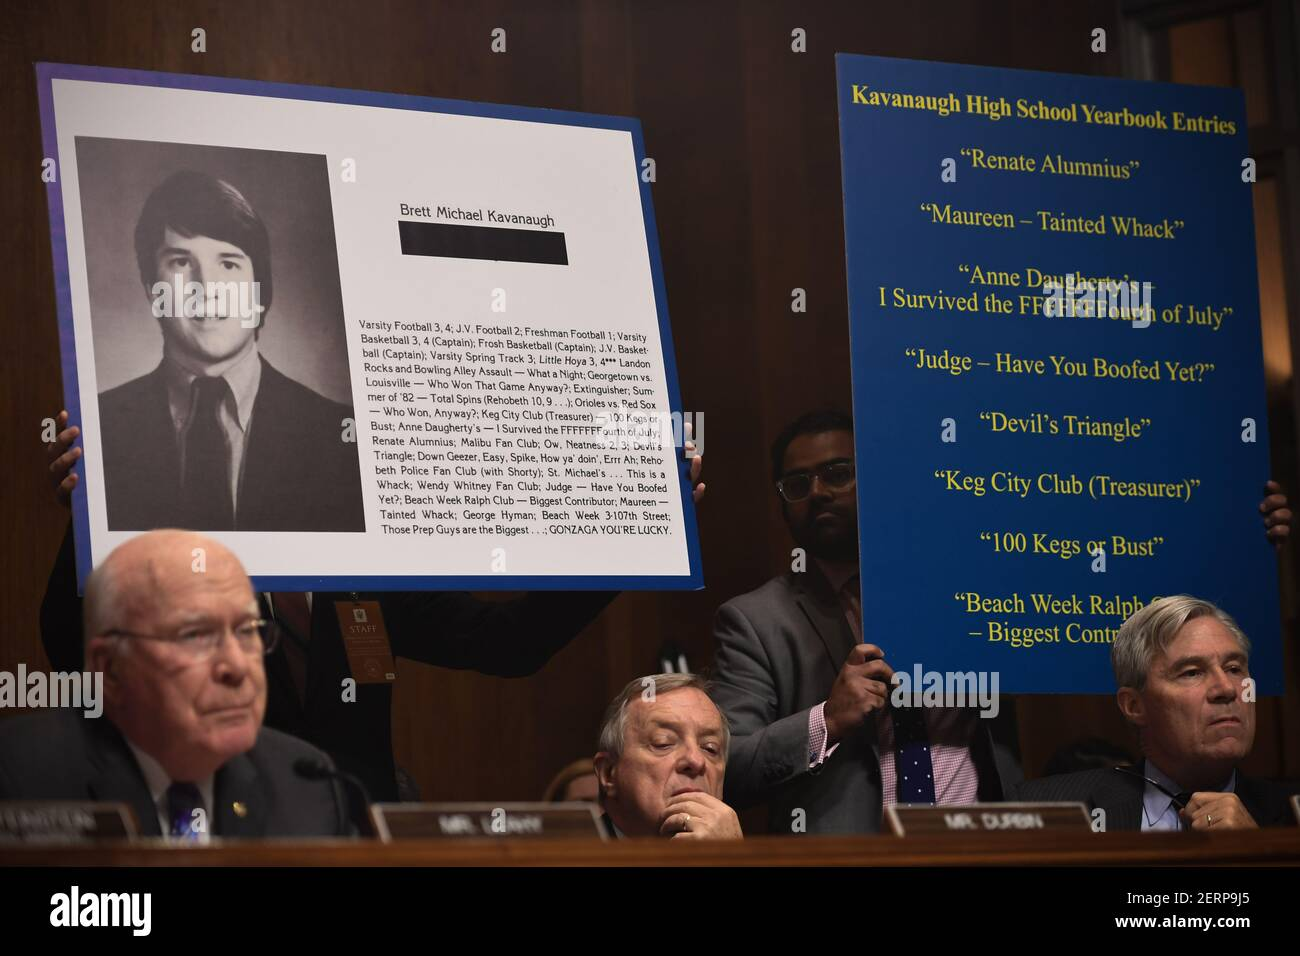 Extracts of his high school yearbook are displayed as Supreme Court nominee Brett Kavanaugh testifies before the US Senate Judiciary Committee on Capitol Hill in Washington, DC, September 27, 2018. (Photo by SAUL LOEB/Pool/Sipa USA) Stock Photo